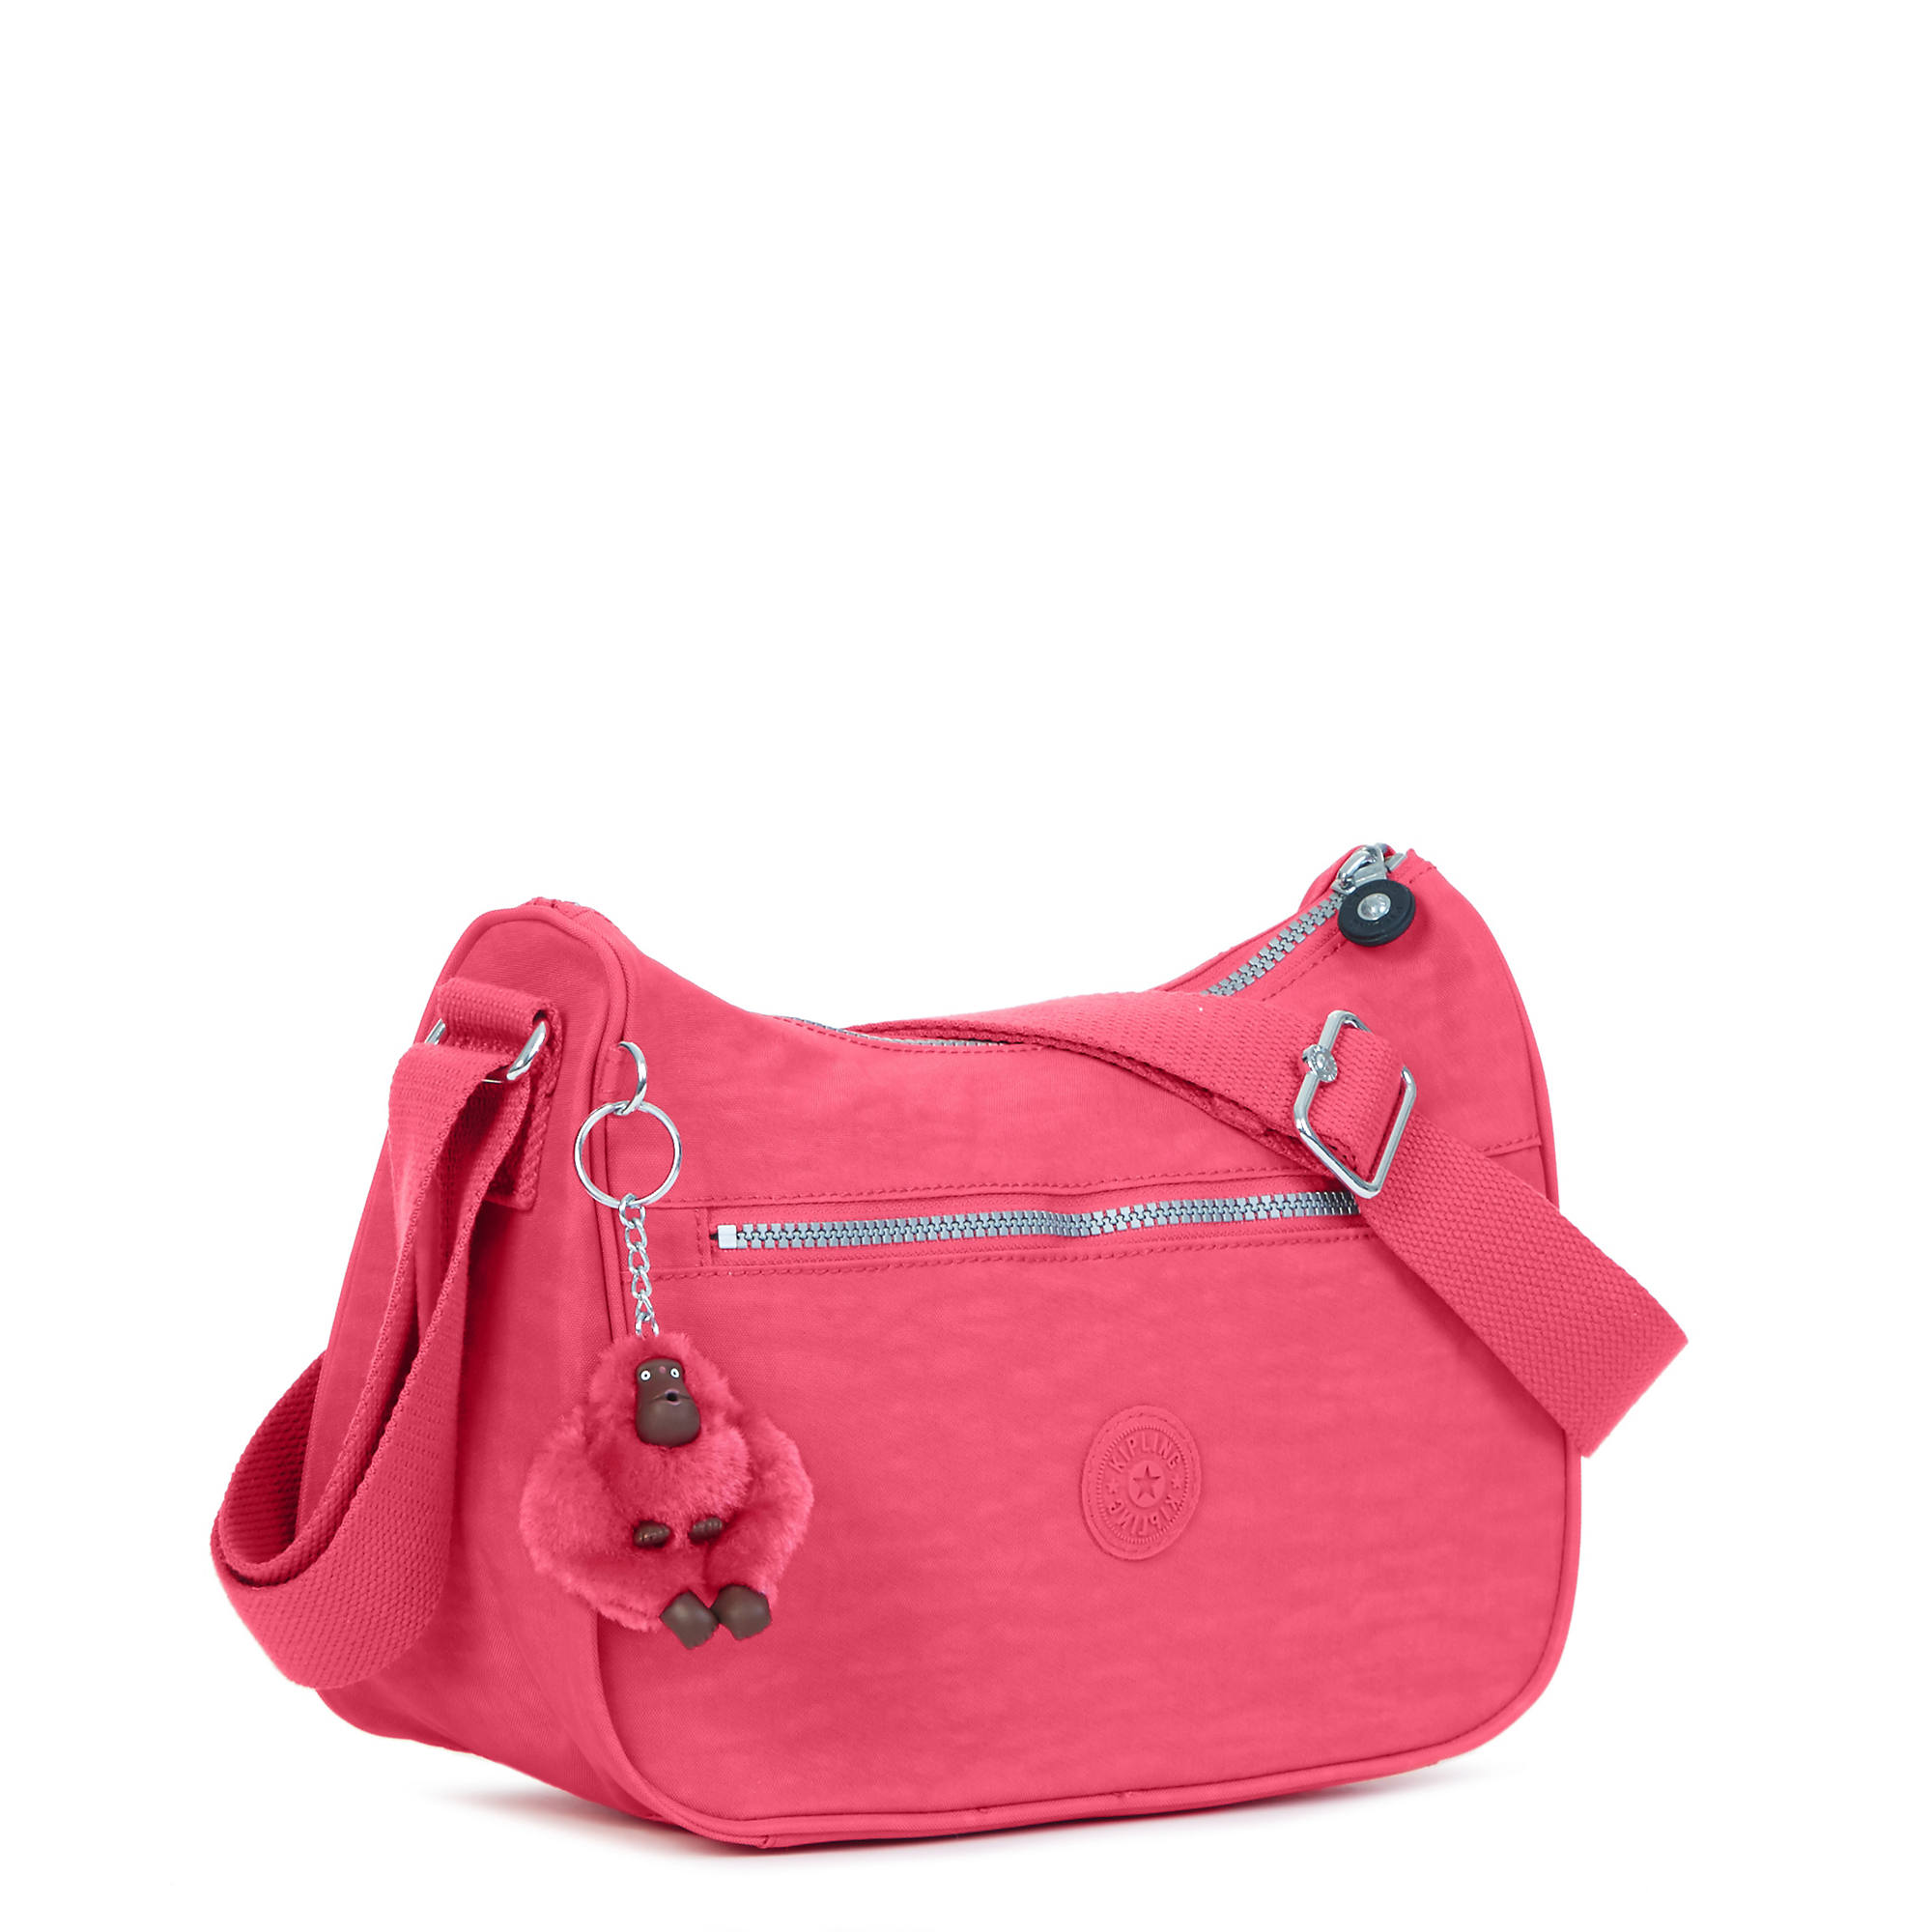 b5c0e0176 Sally Handbag,Vibrant Pink,large